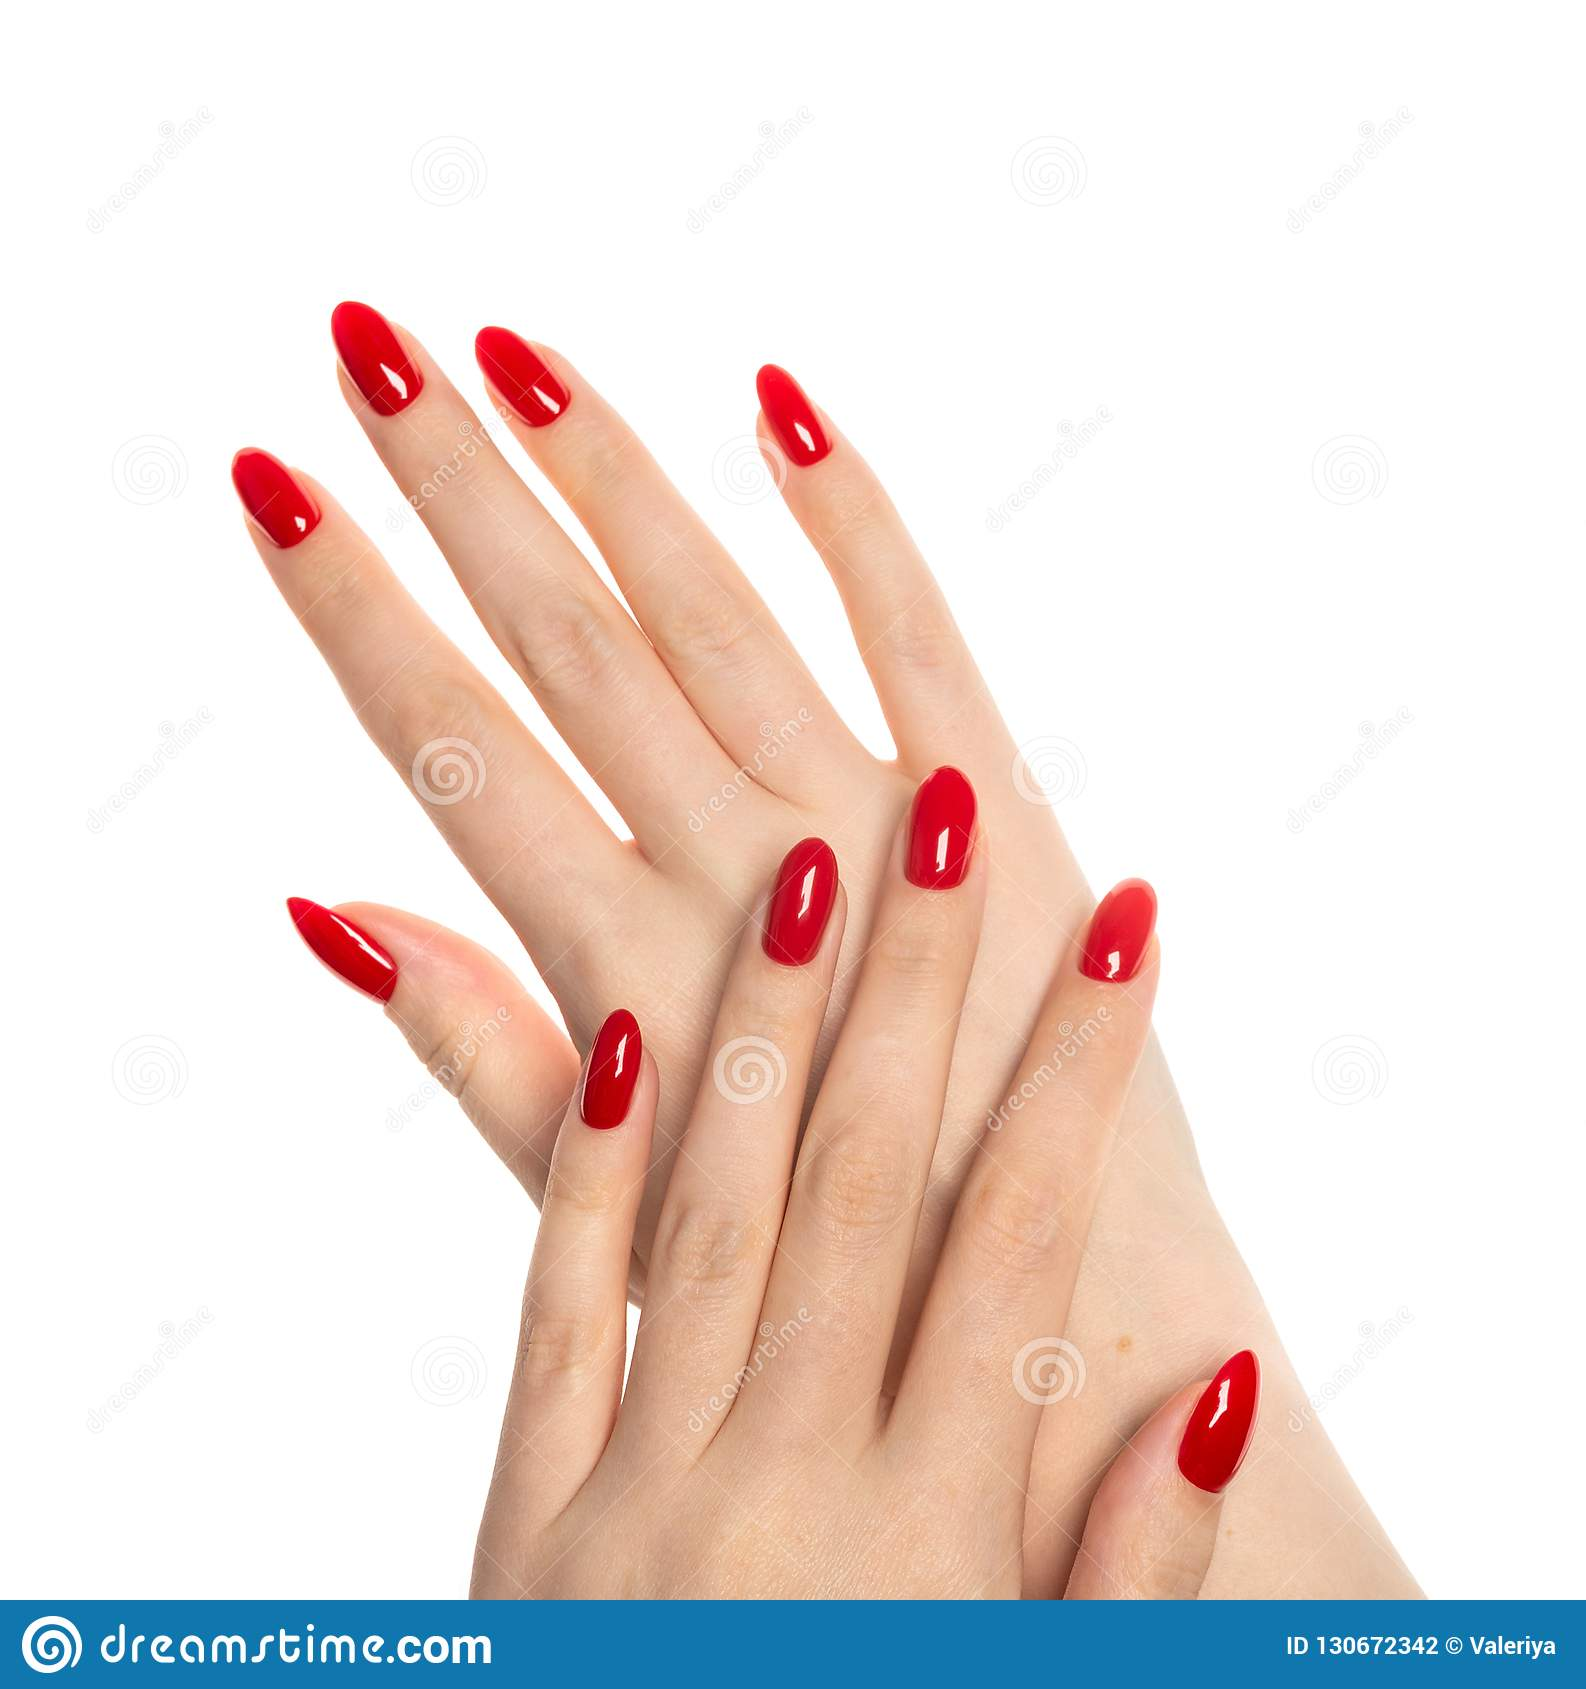 Woman Hands With Manicured Red Nails Stock Photo Image Of Fashion Design 130672342